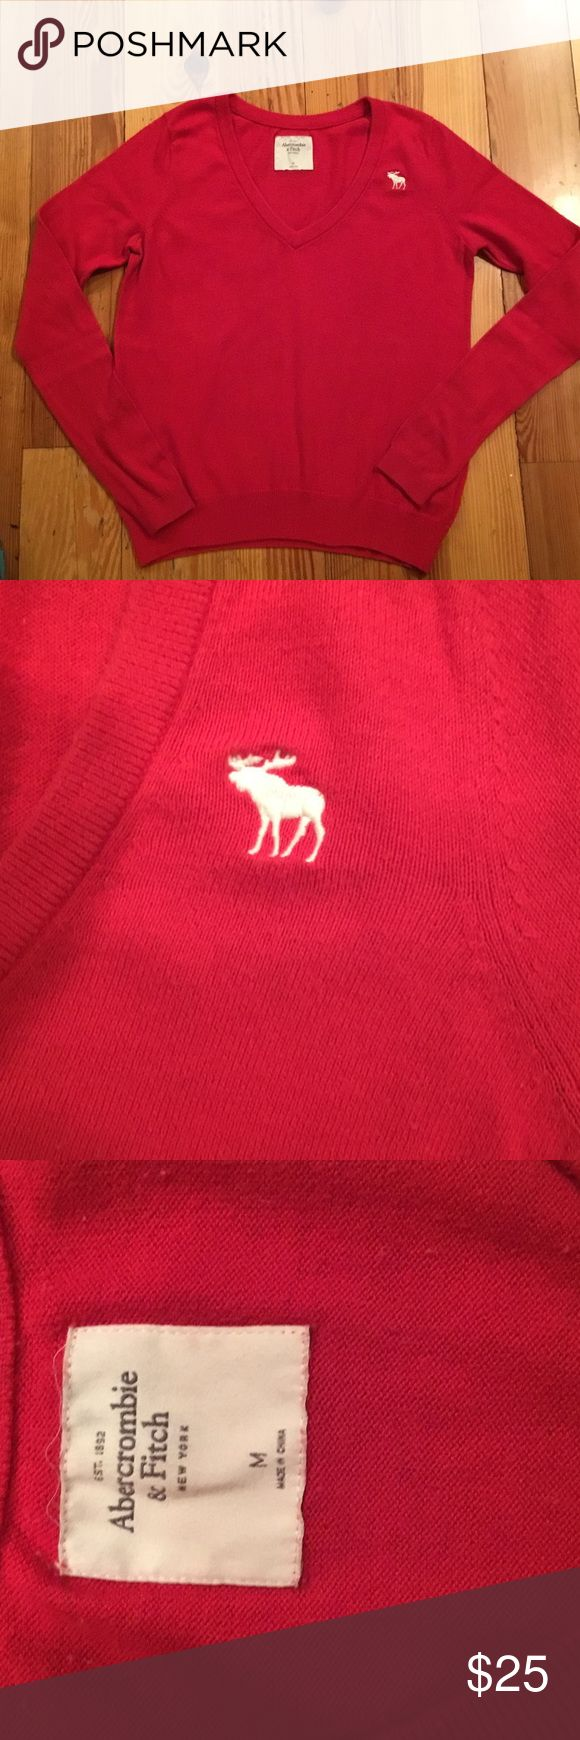 NWOT ABERCROMBIE AND FITCH SWEATER HOLIDAY STYLE NEW WITHOUT TAGS ABERCROMBIE AND FITCH SWEATER. This is a cheerful red and will be great to wear with skirts, leggings or skinny jeans! Perfect to wear to a holiday party! In MINT CONDITION with no rips, stains, tears or pilling. FROM MY CLEAN NON SMOKING HOME. Check out my other items as I am cleaning out closets and listing a lot of good stuff.  I do bundle! Thanks for looking!!😊 I do bundle. Abercrombie & Fitch Sweaters V-Necks